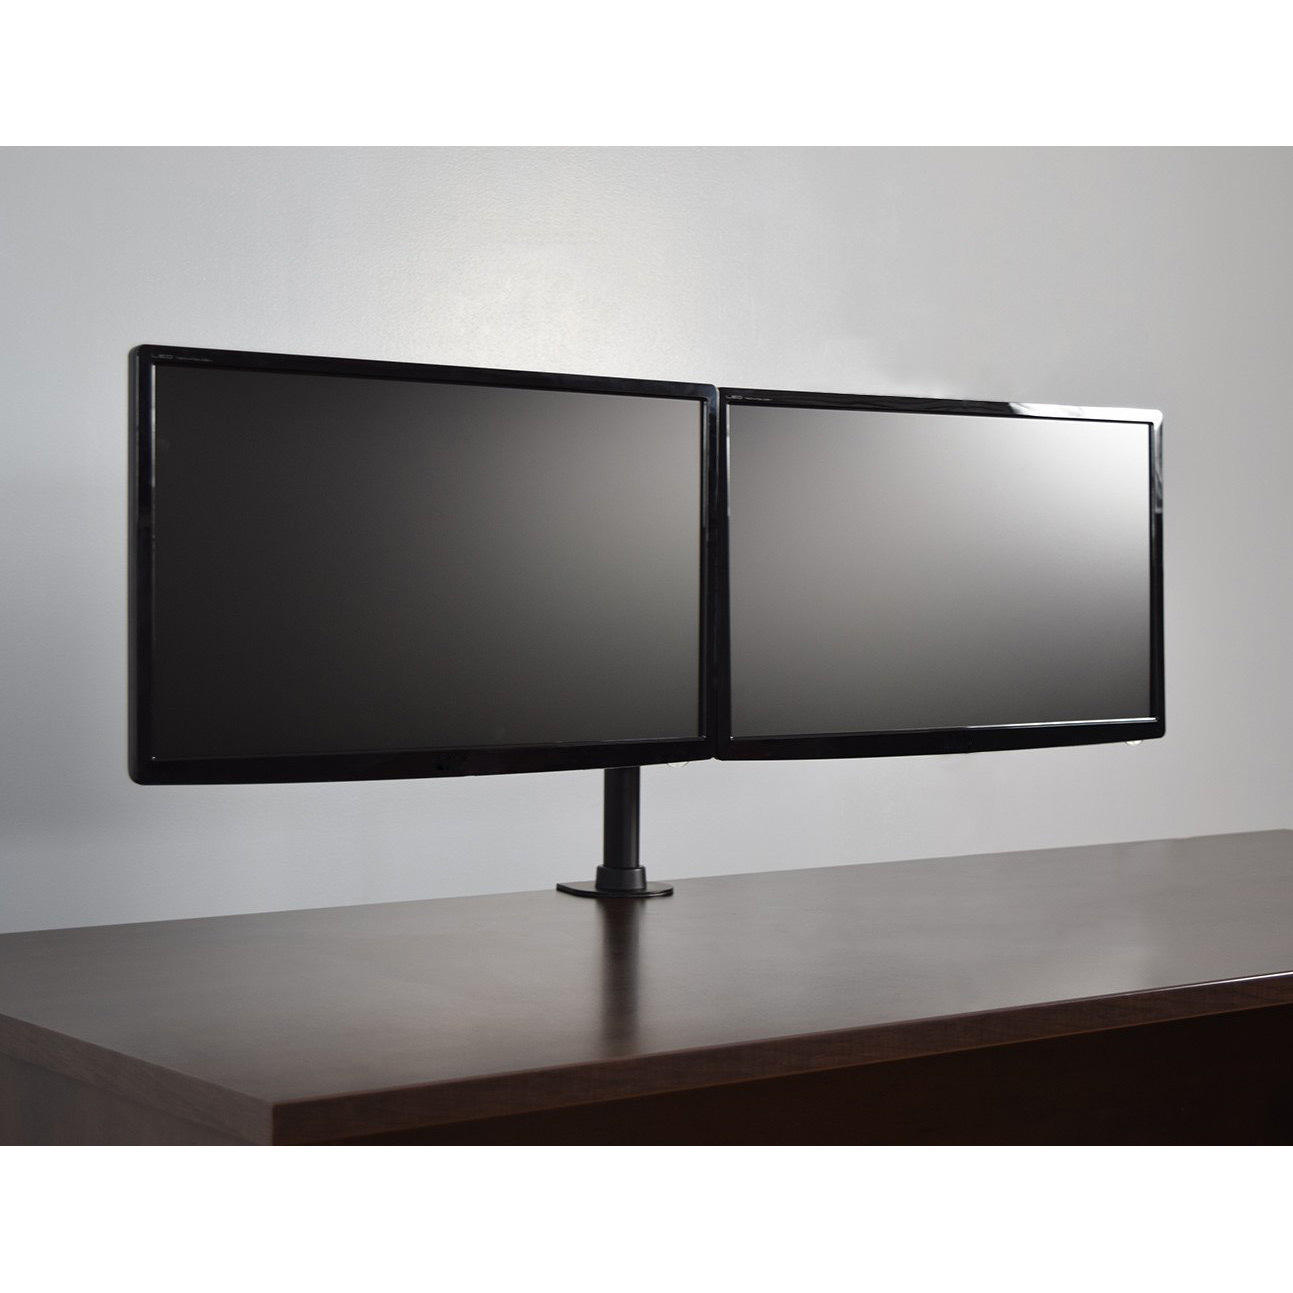 Monitor Desk Mounts Dual LCD monitor